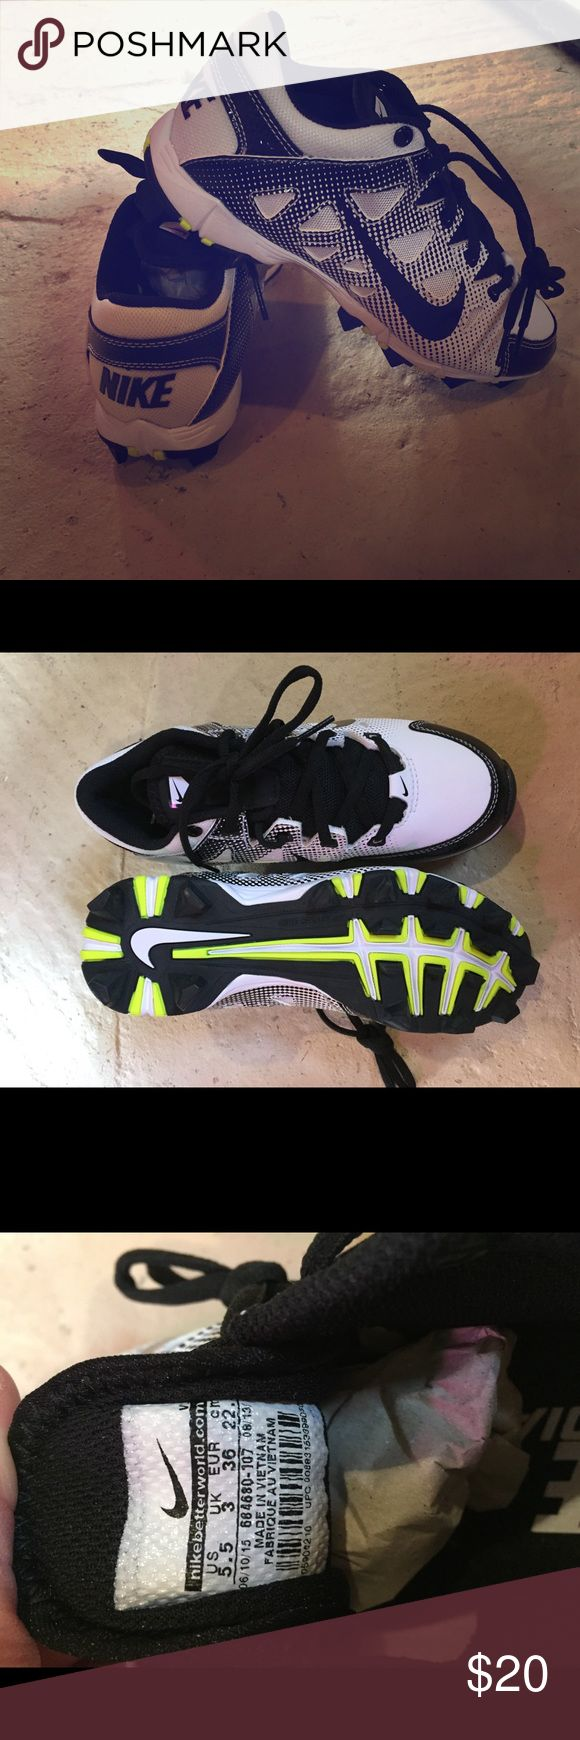 Nike Youth cleats- brand new Size 5.5 youth cleats. Never worn Nike Shoes